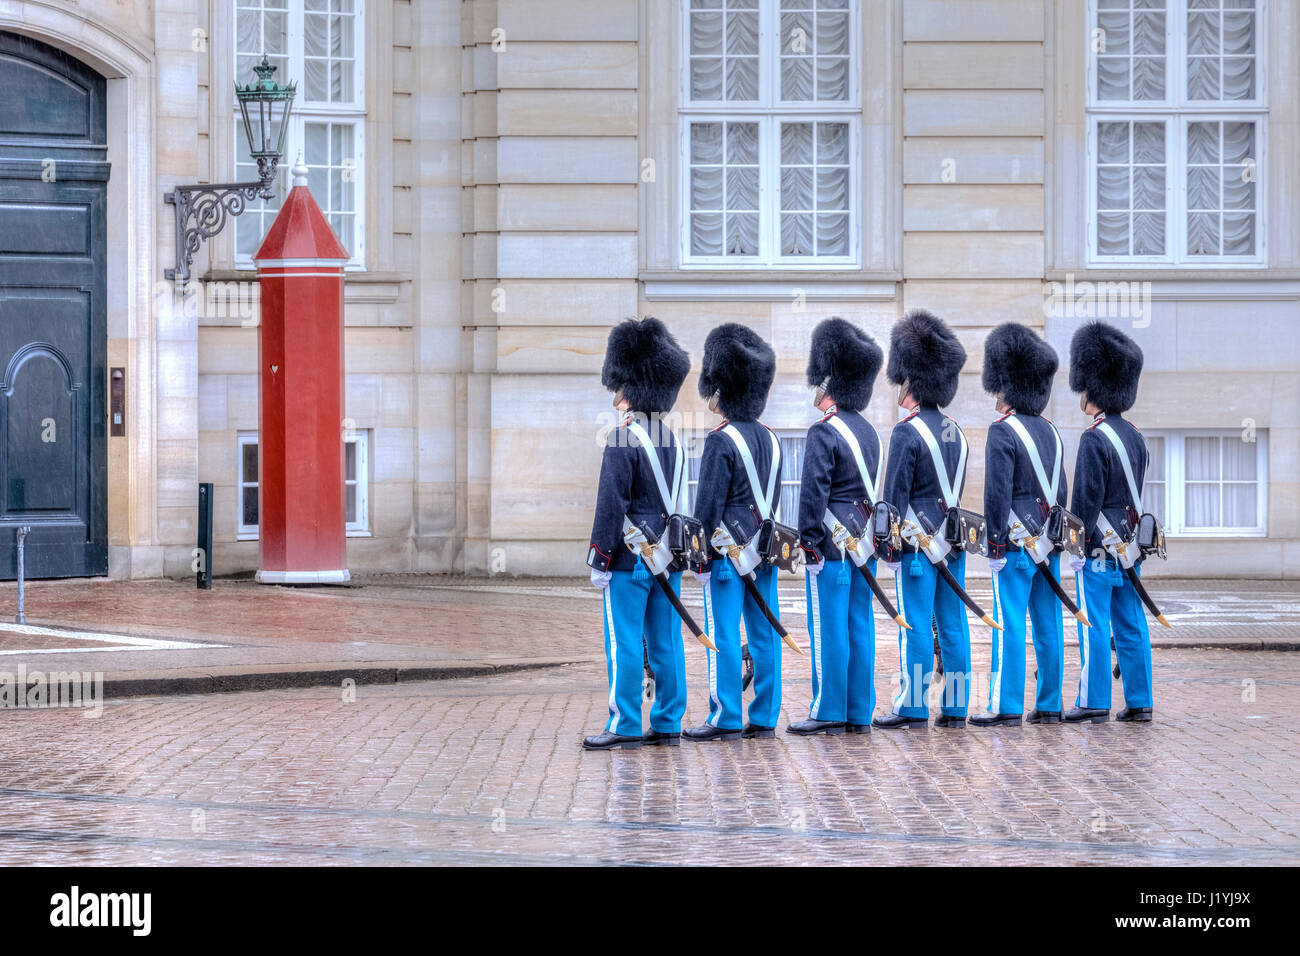 guards at Palace Amalienborg in Copenhagen, Denmark, Scandinavia - Stock Image